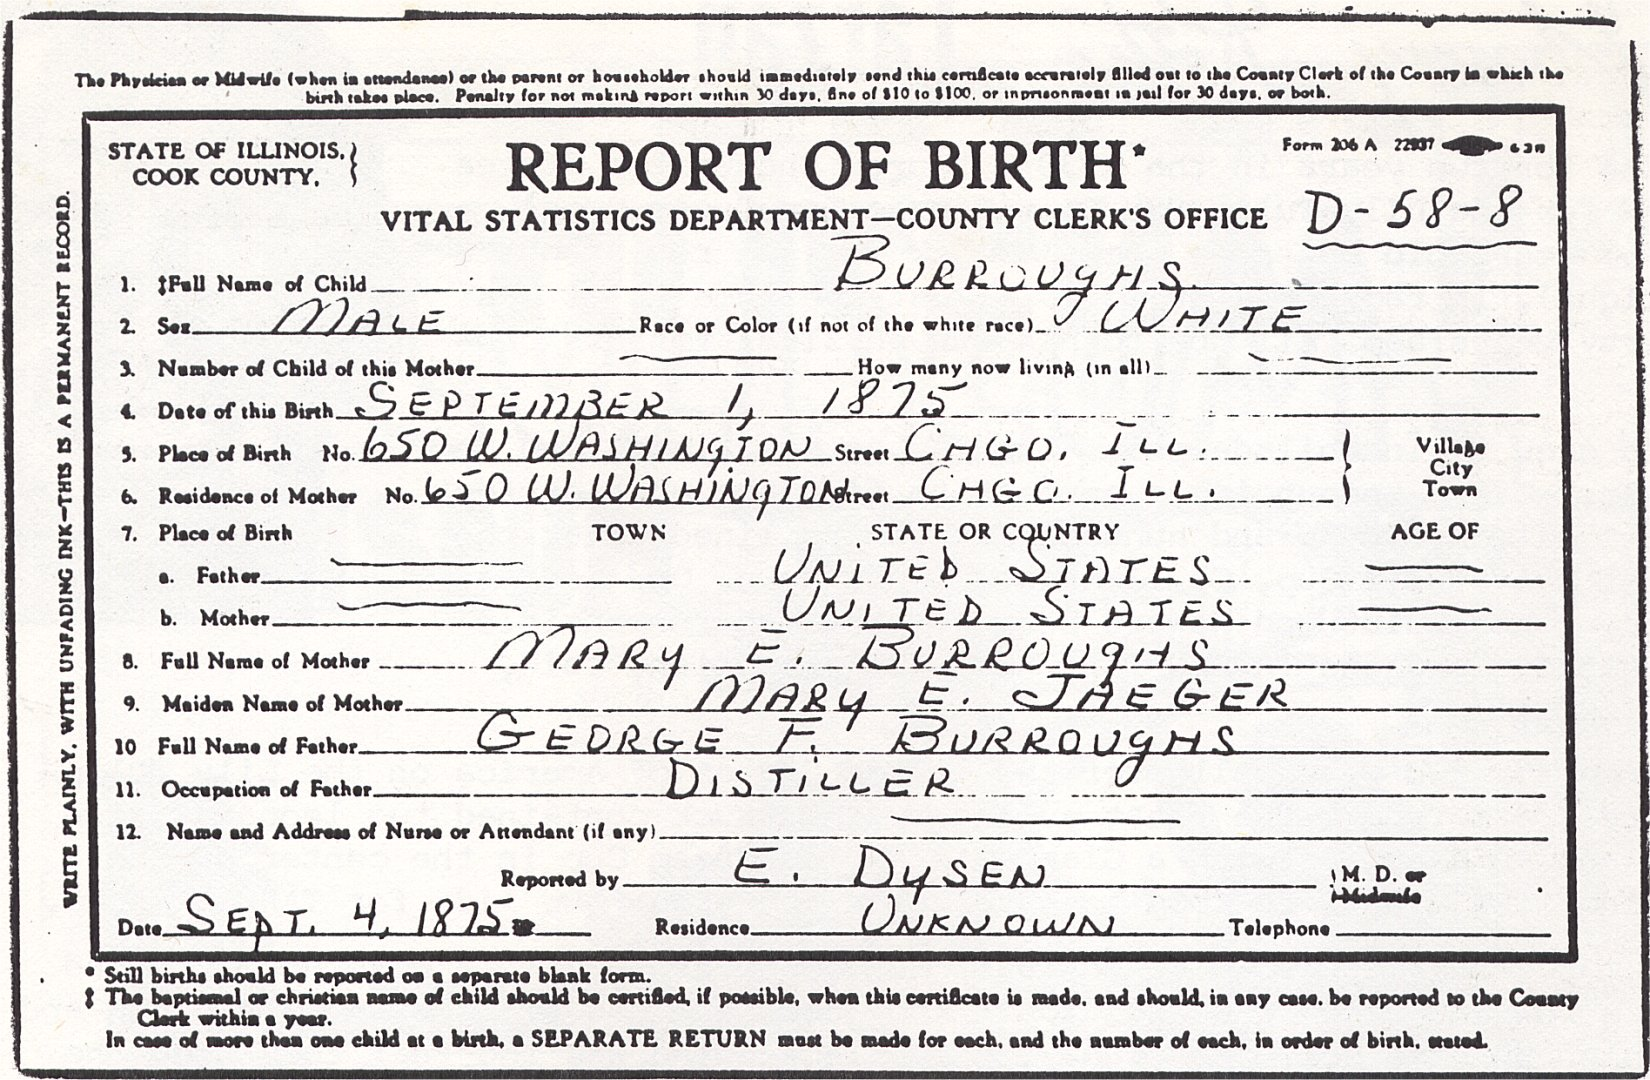 Erb lifeline biography 1875 1899 birth certificate of edgar rice burroughs note his mothers maiden name should be zieger and his fathers middle initial should be t for tyler aiddatafo Images